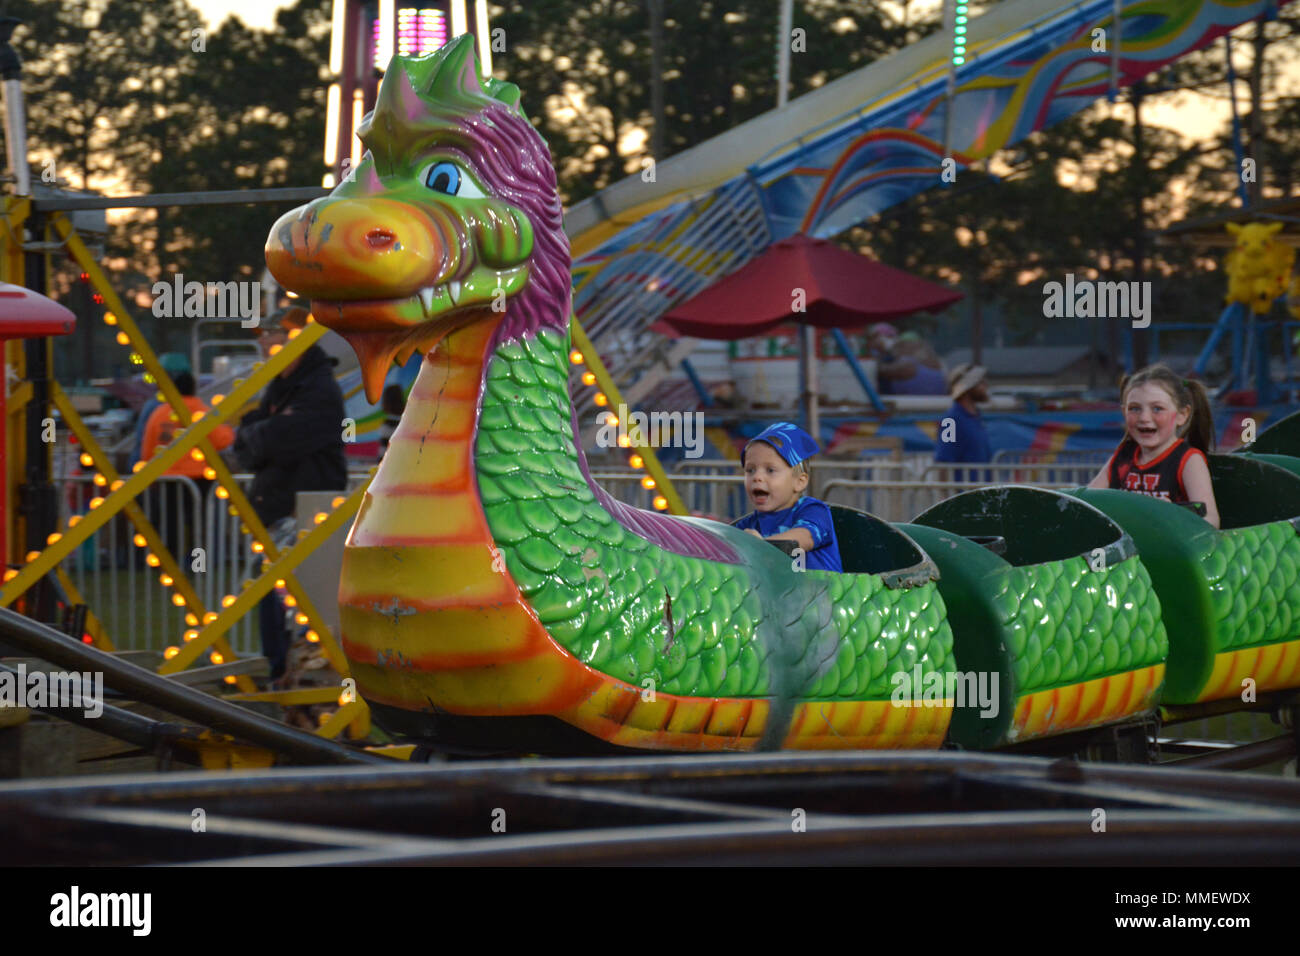 Catboy jason james and cheerleader marly ride a childrens dragon catboy jason james and cheerleader marly ride a childrens dragon roller coaster during fort stewarts fall fest oct 26 at donovan field freerunsca Gallery